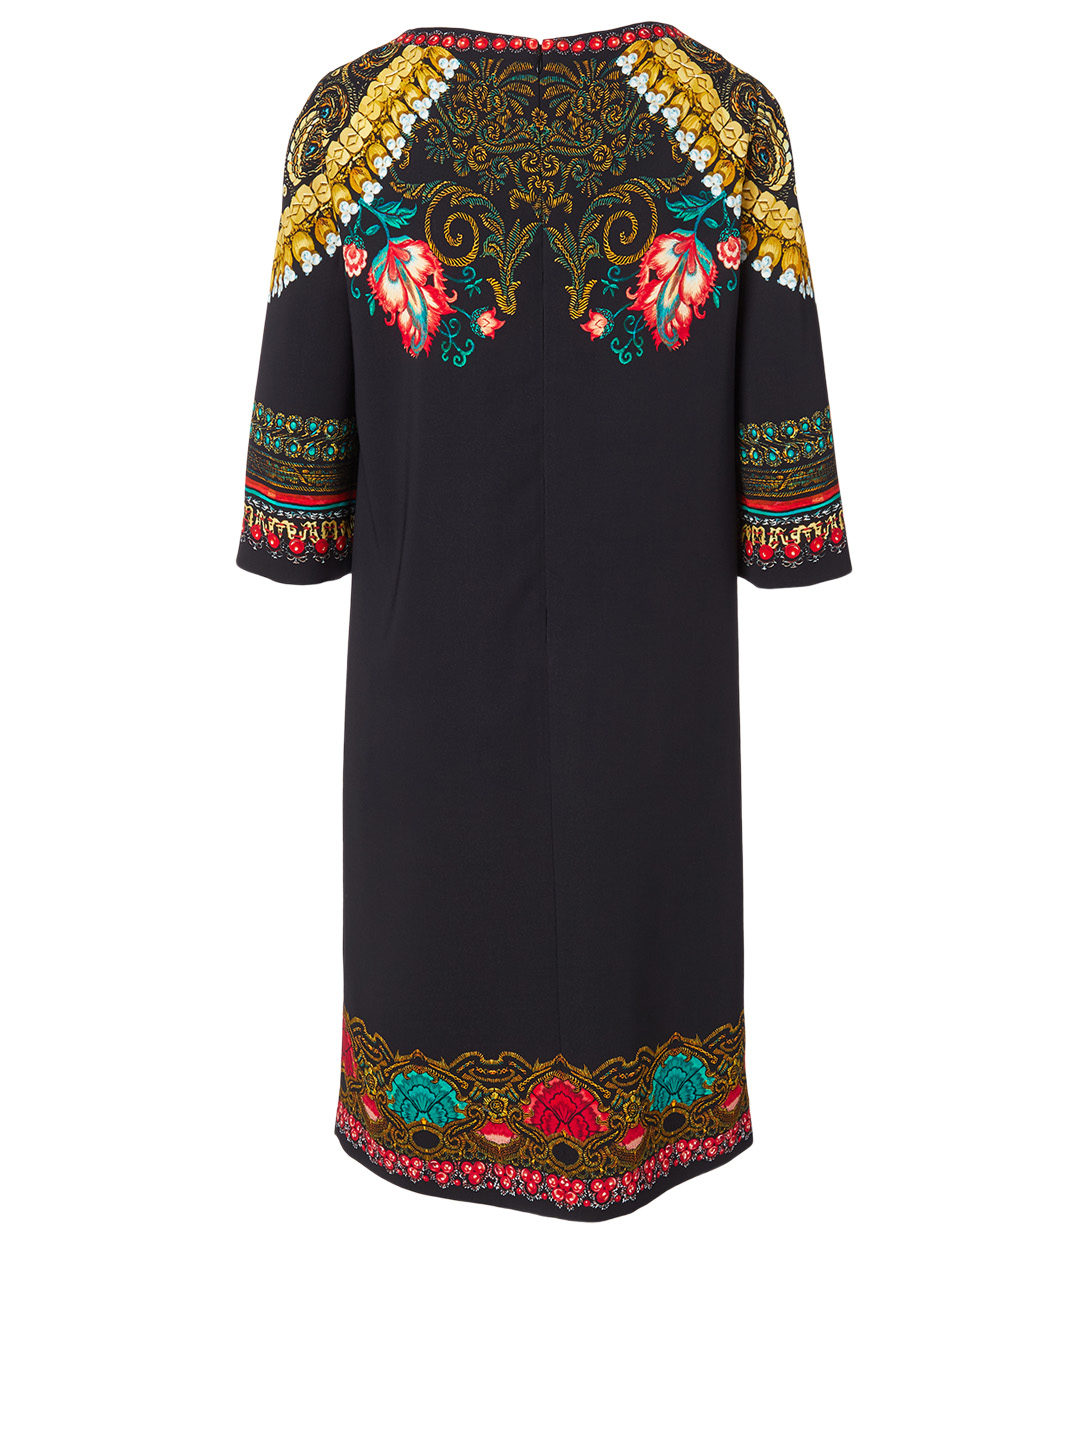 ETRO Tunic Dress In Floral Print Women's Black